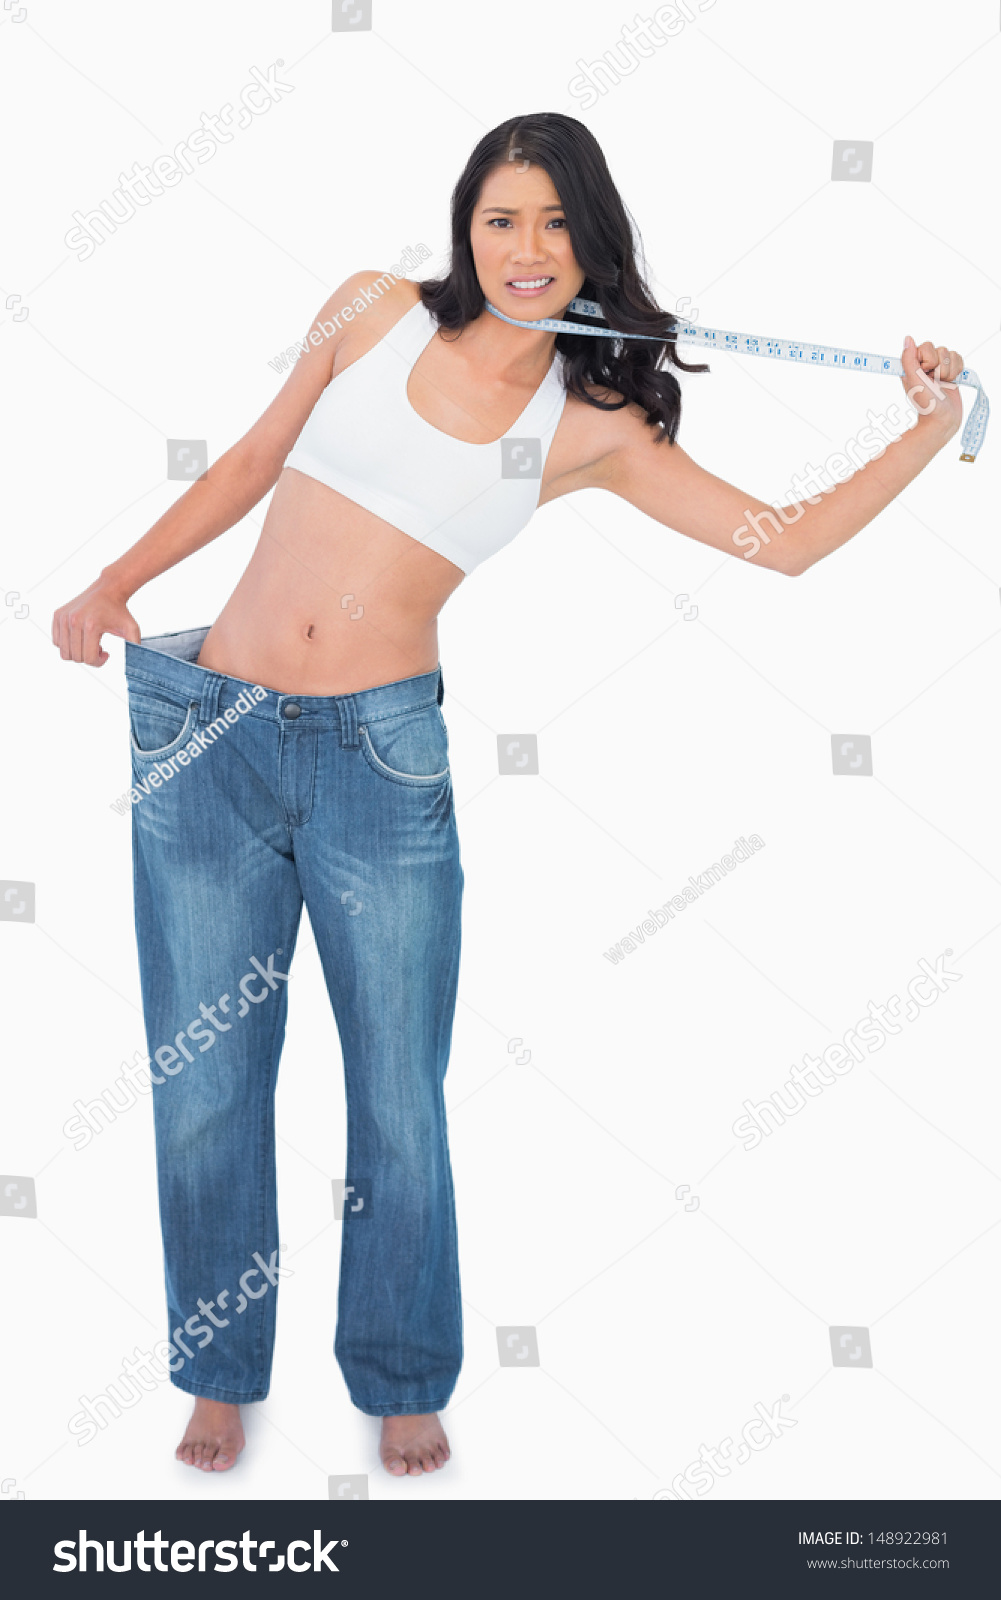 Background image too big - Woman Wearing Too Big Pants And Strangling Herself With Measuring Tape On White Background